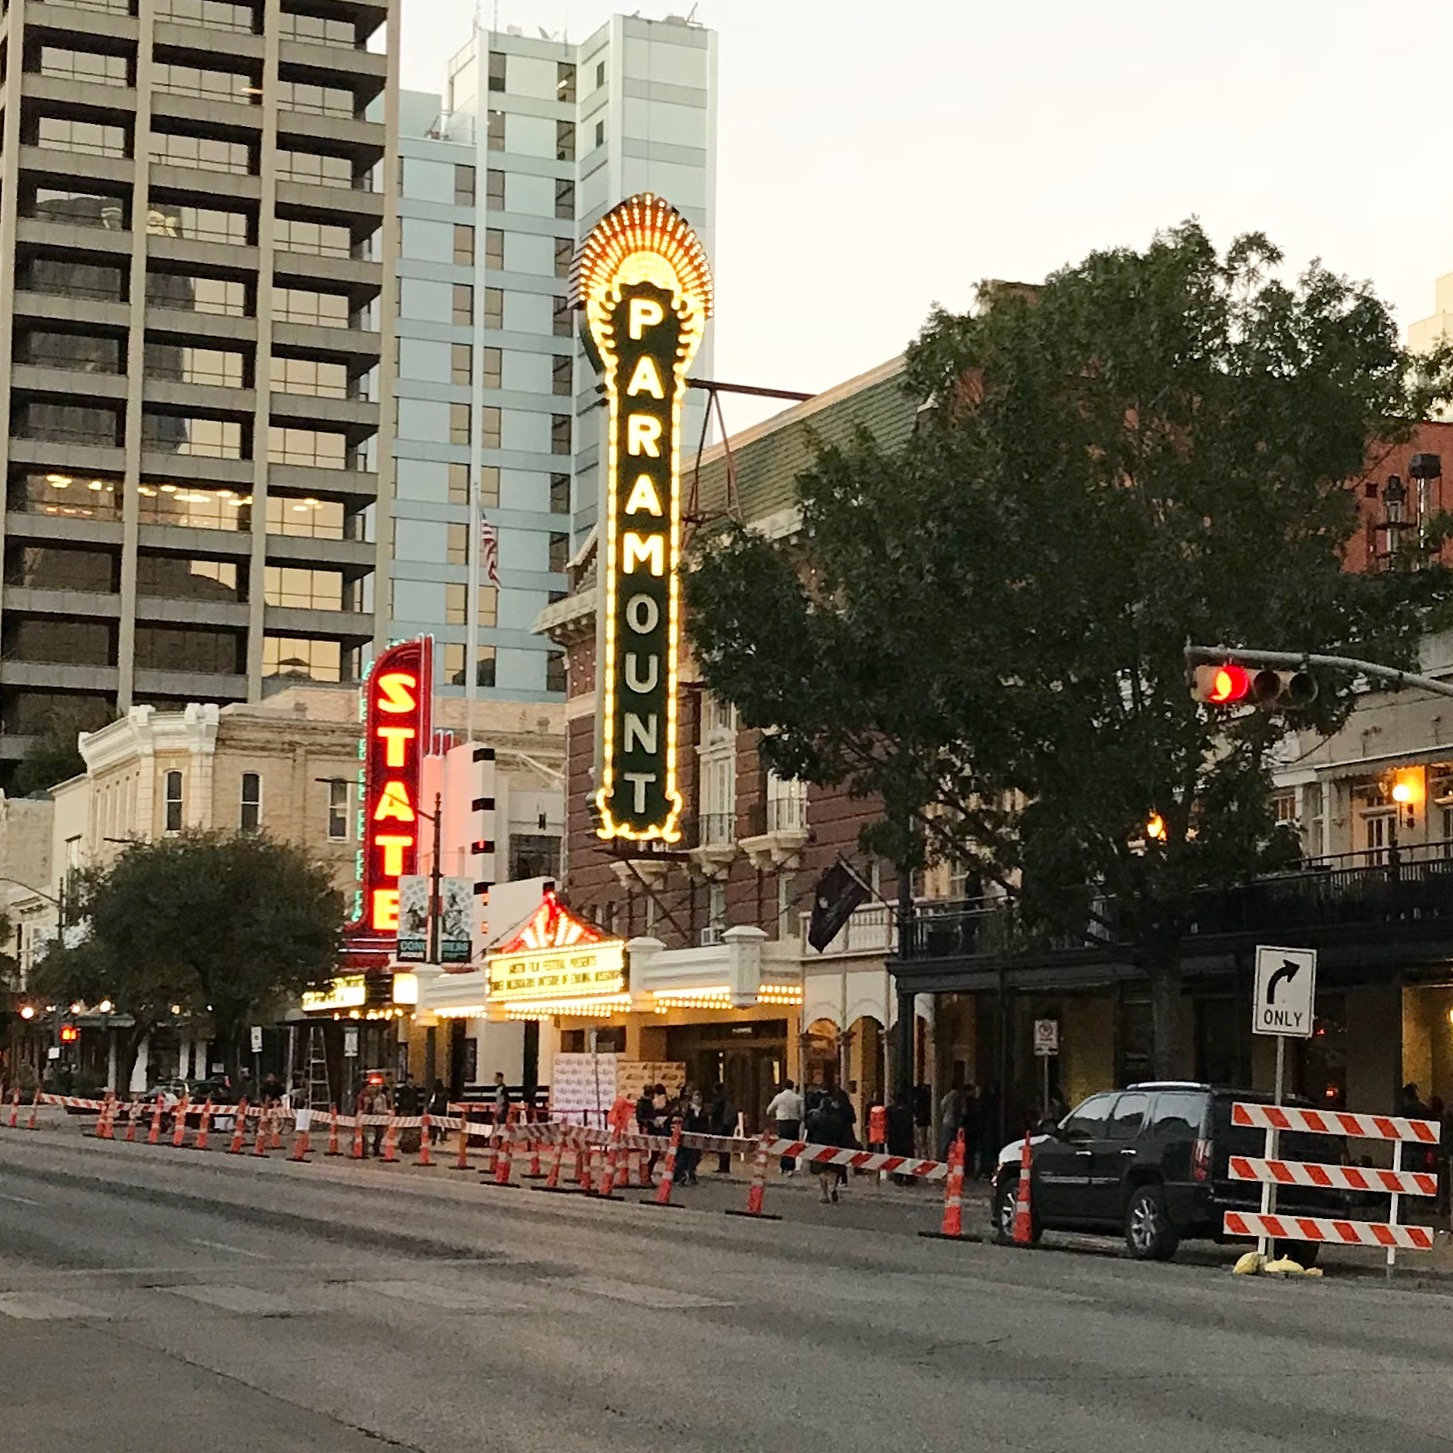 The Paramount Theater at The Austin Film Festival